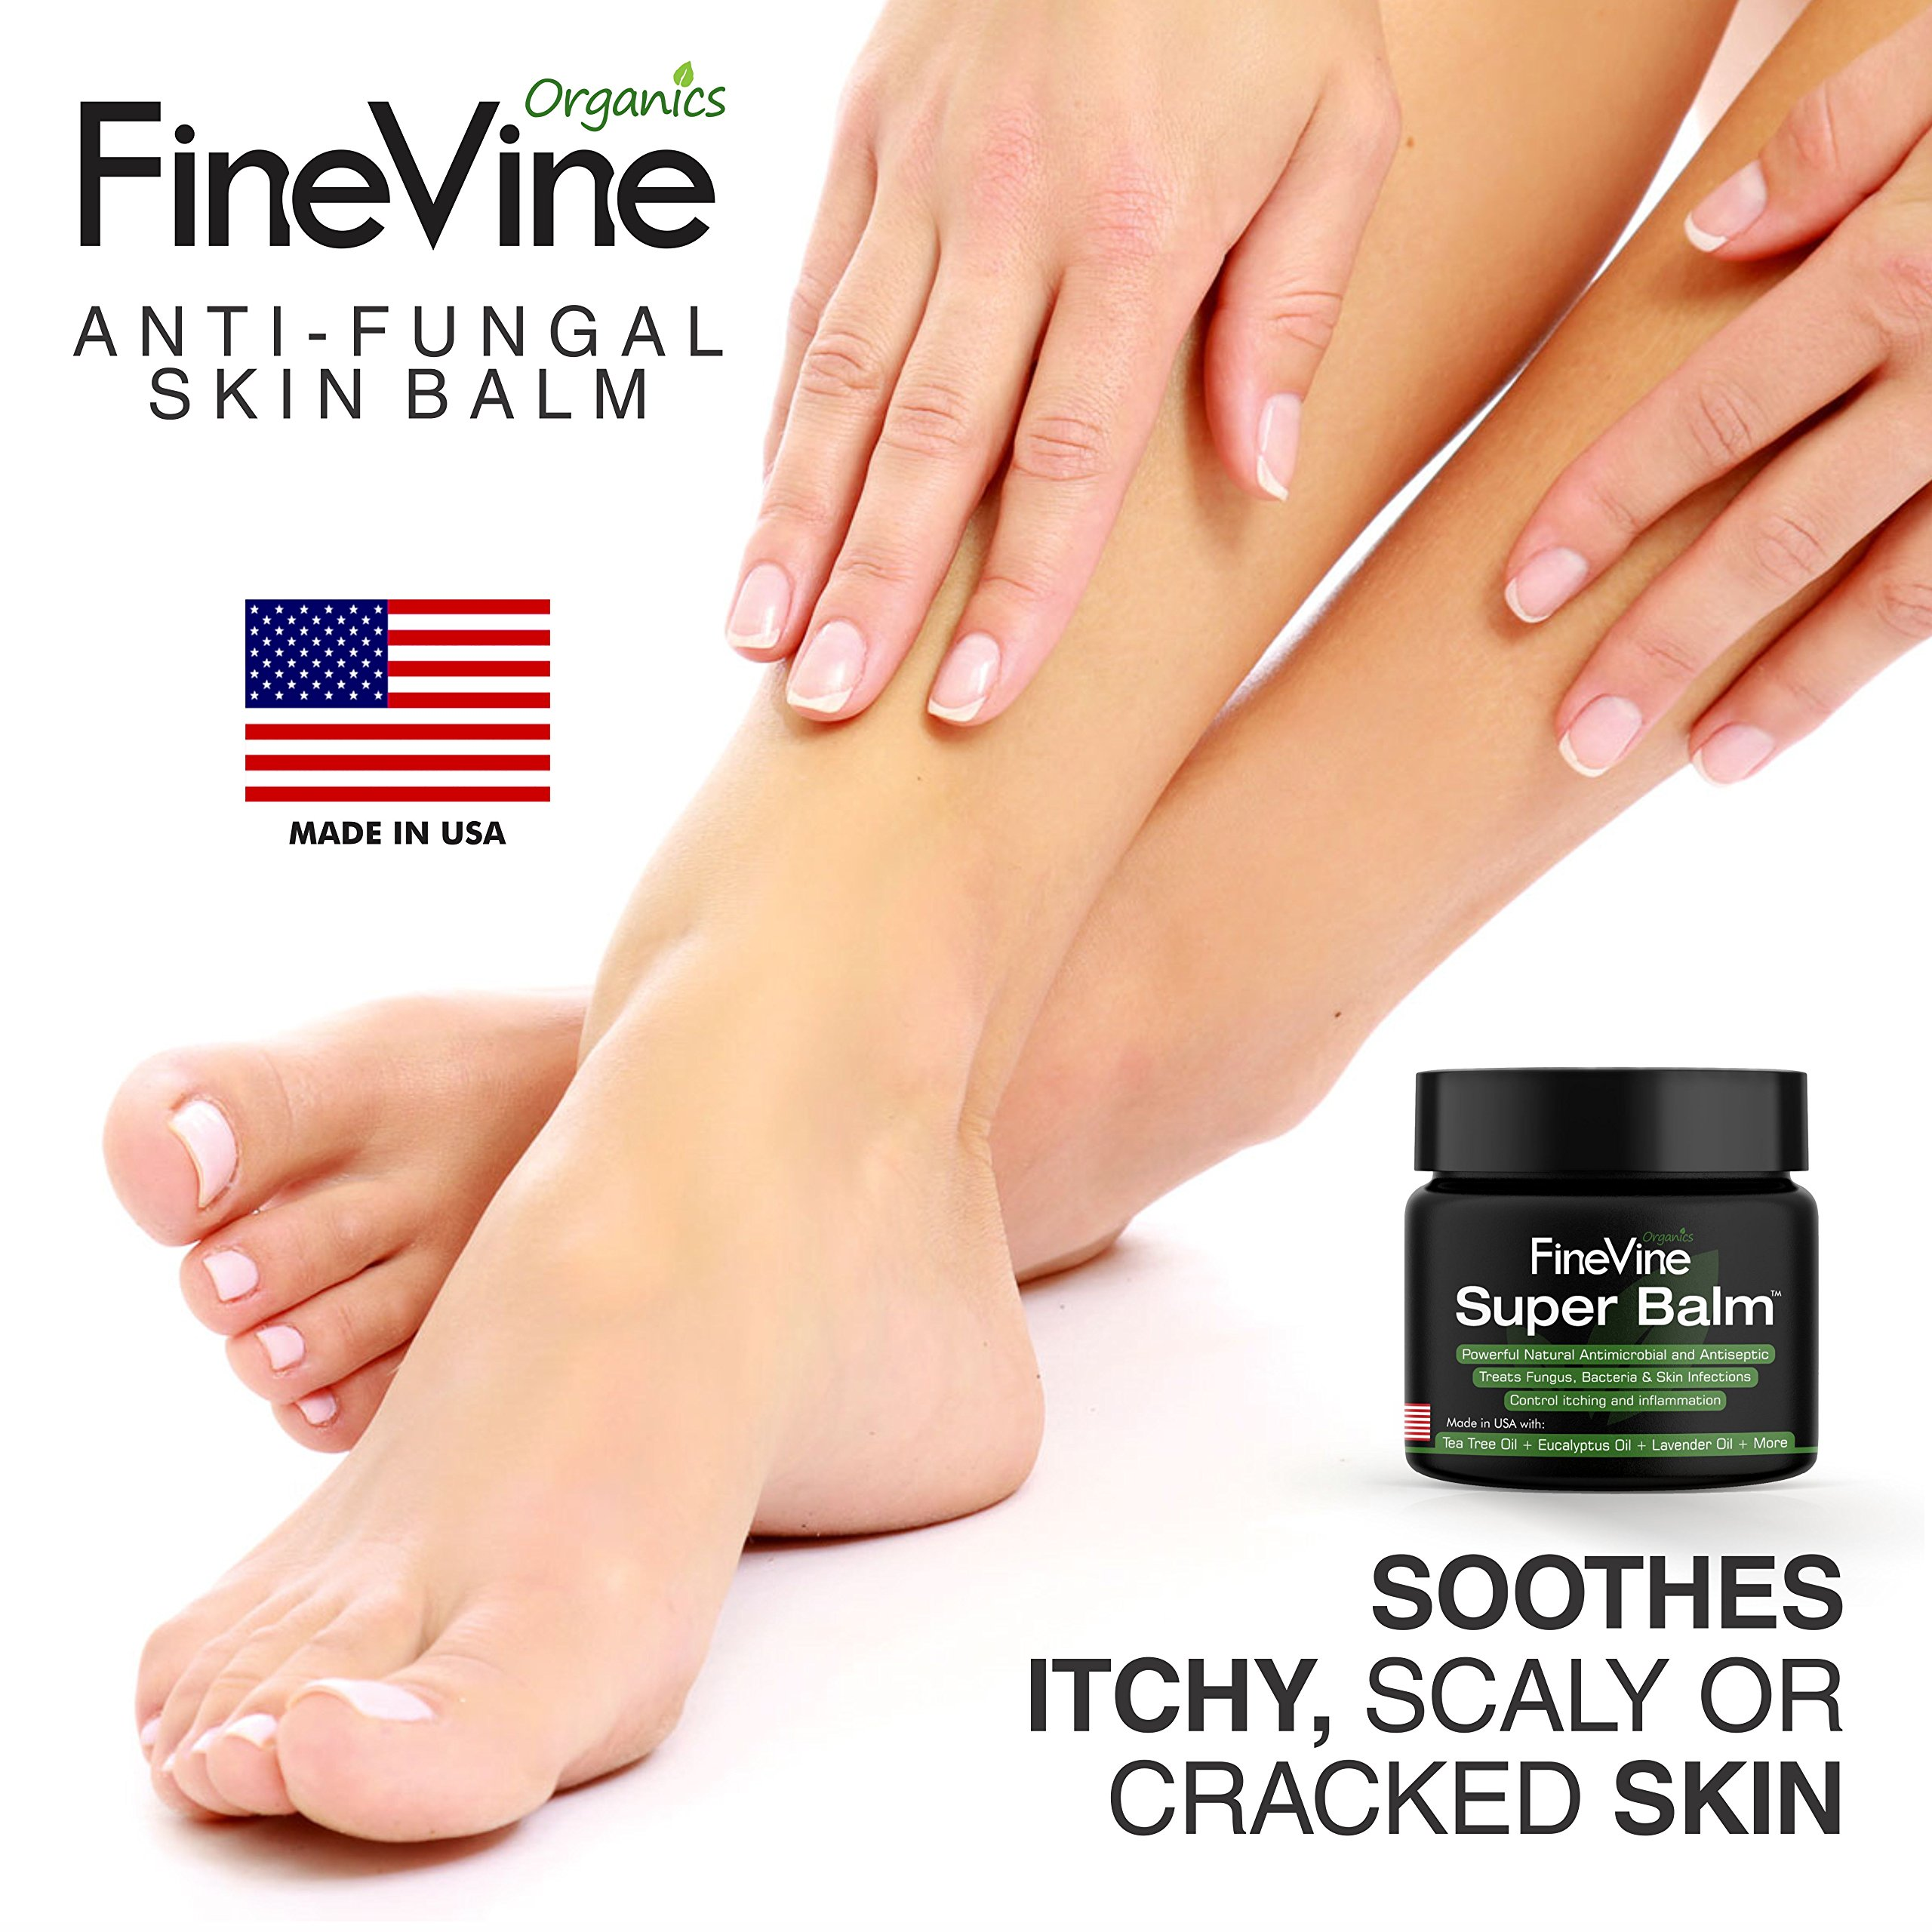 Antifungal Balm - Made in USA - Helps Treat Eczema, Ringworm, Jock Itch, Athletes Foot and Nail Fungal Infections - Best Natural Ointment to Soothes Itchy, Scaly or Cracked Skin. by FineVine (Image #6)